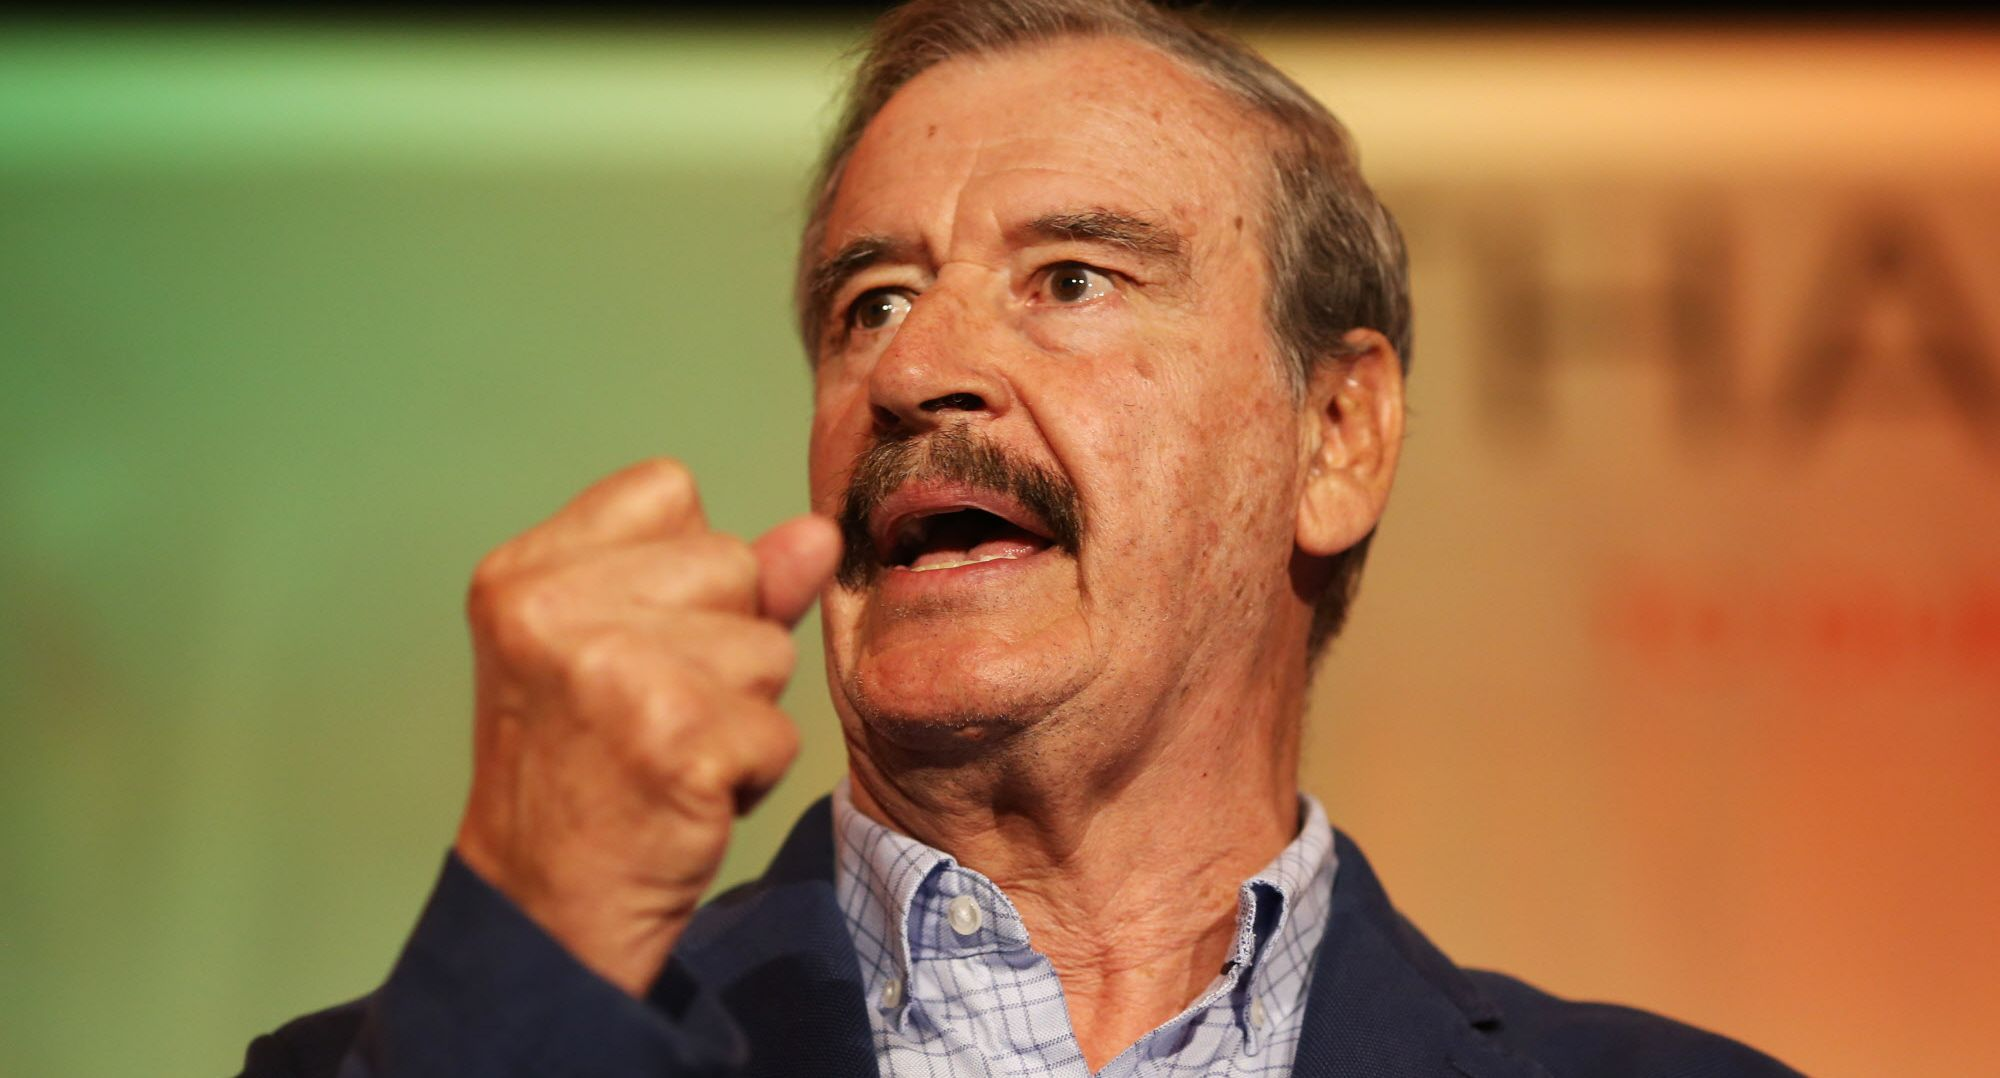 Former Mexican President Vicente Fox delivers keynote remarks at the National Cannabis Industry Association's annual conference on Tuesday, June 13, 2017 in Oakland, Calif.